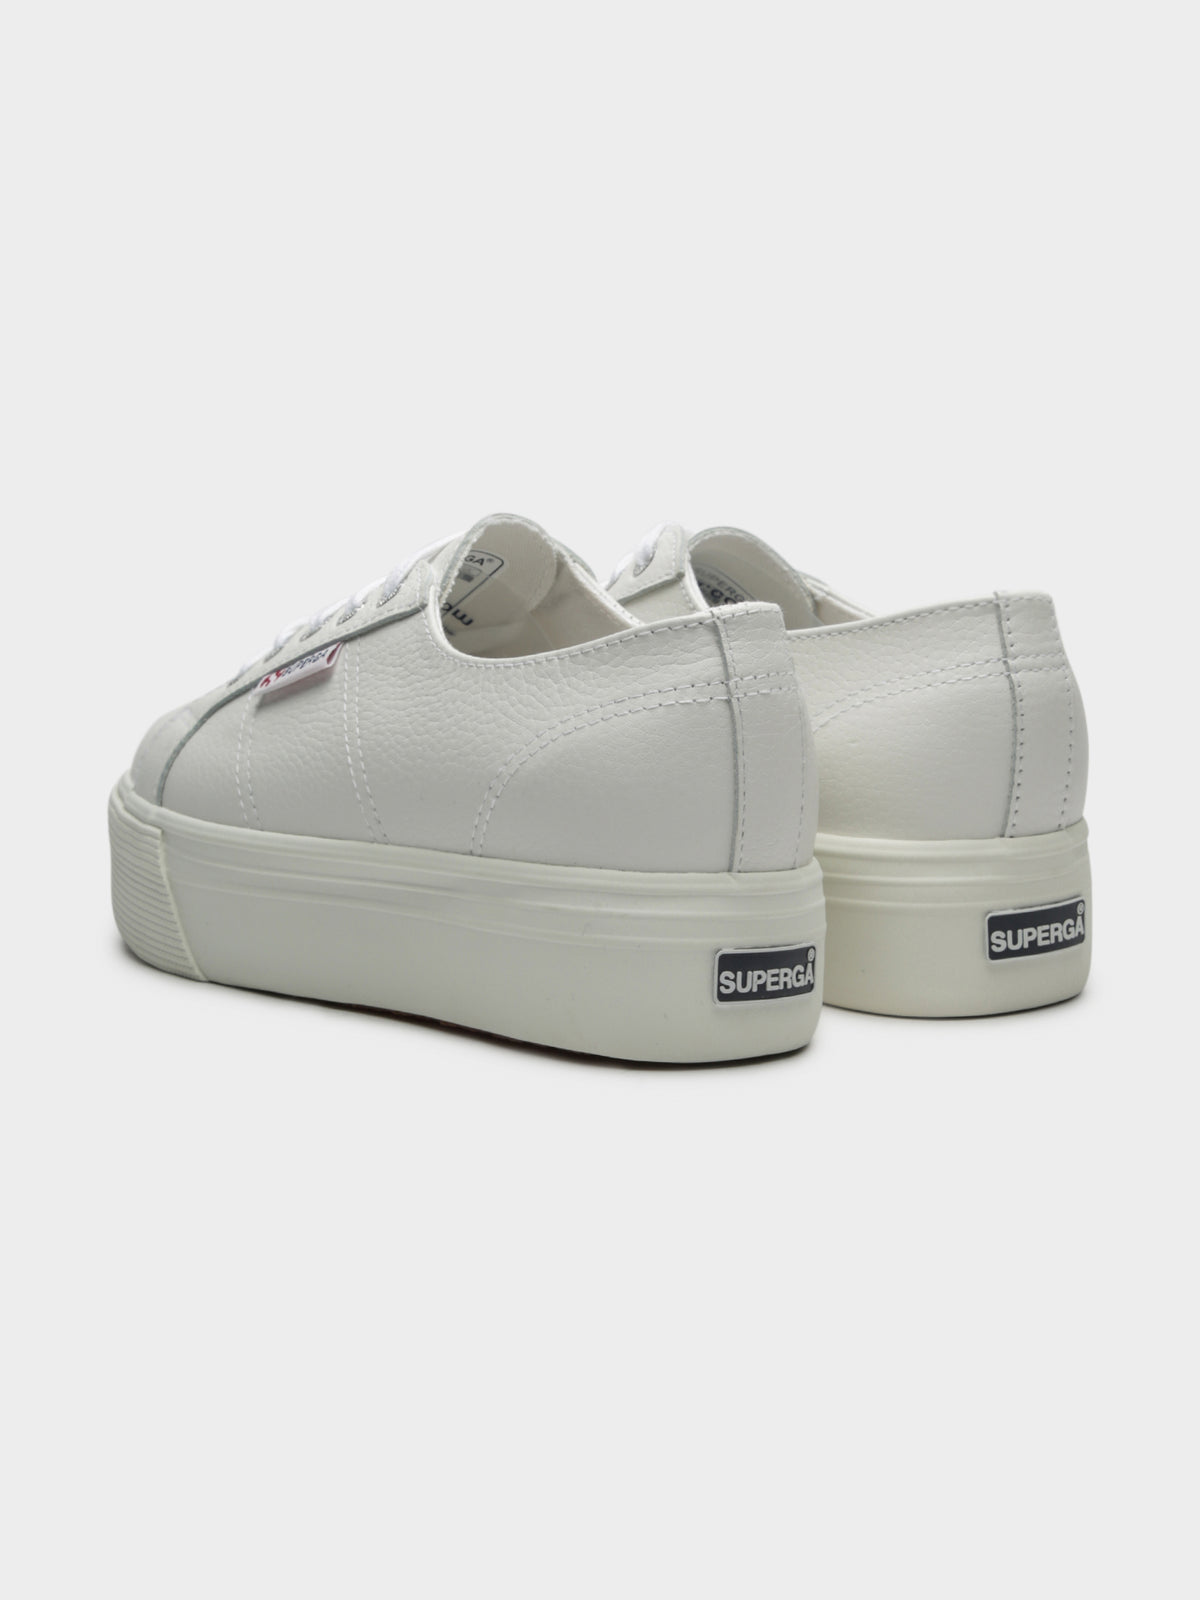 Womens 2790 FGLW Platform Sneakers in White Leather